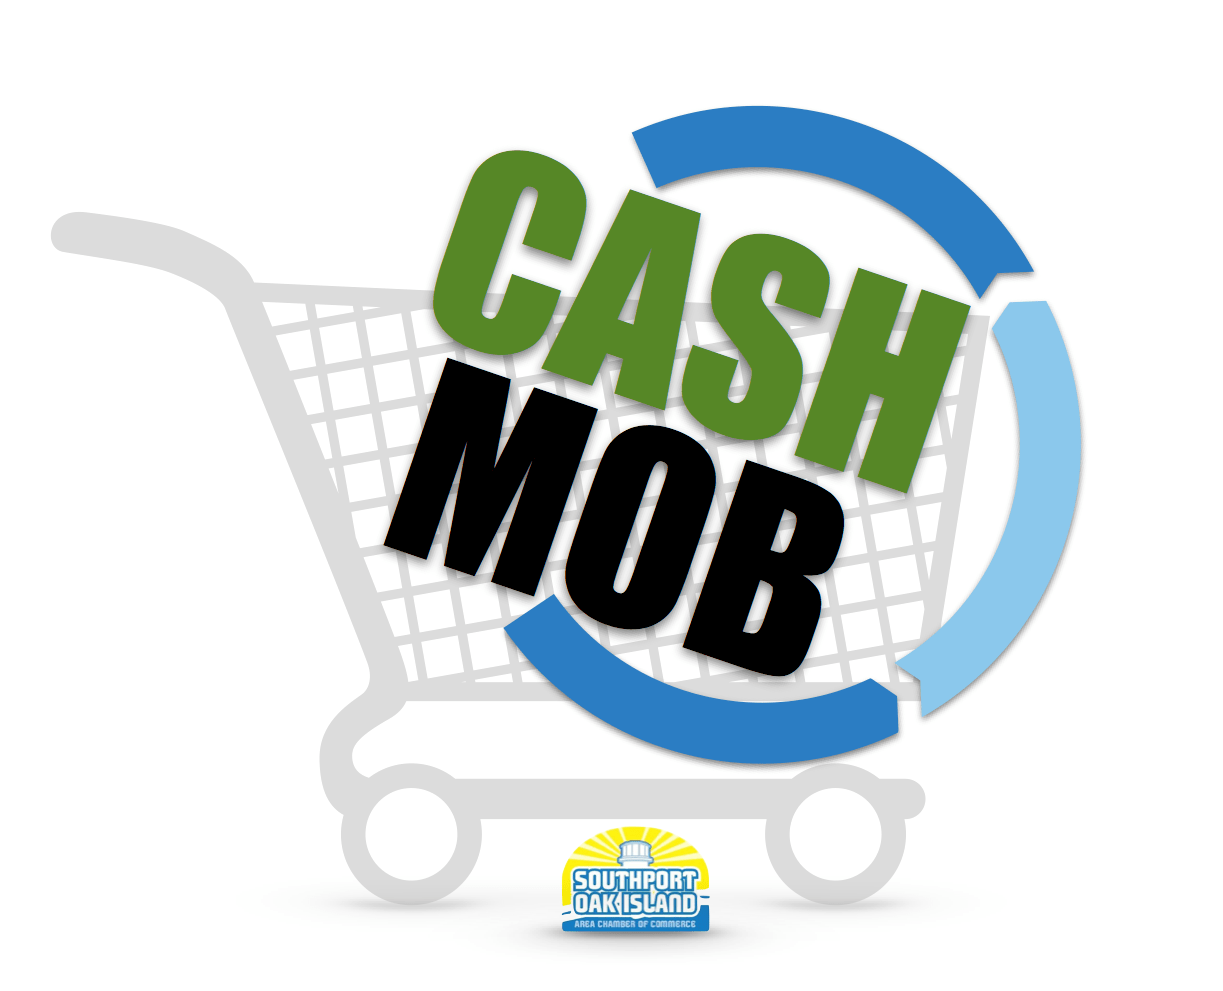 Image result for cash mob southport, nc images